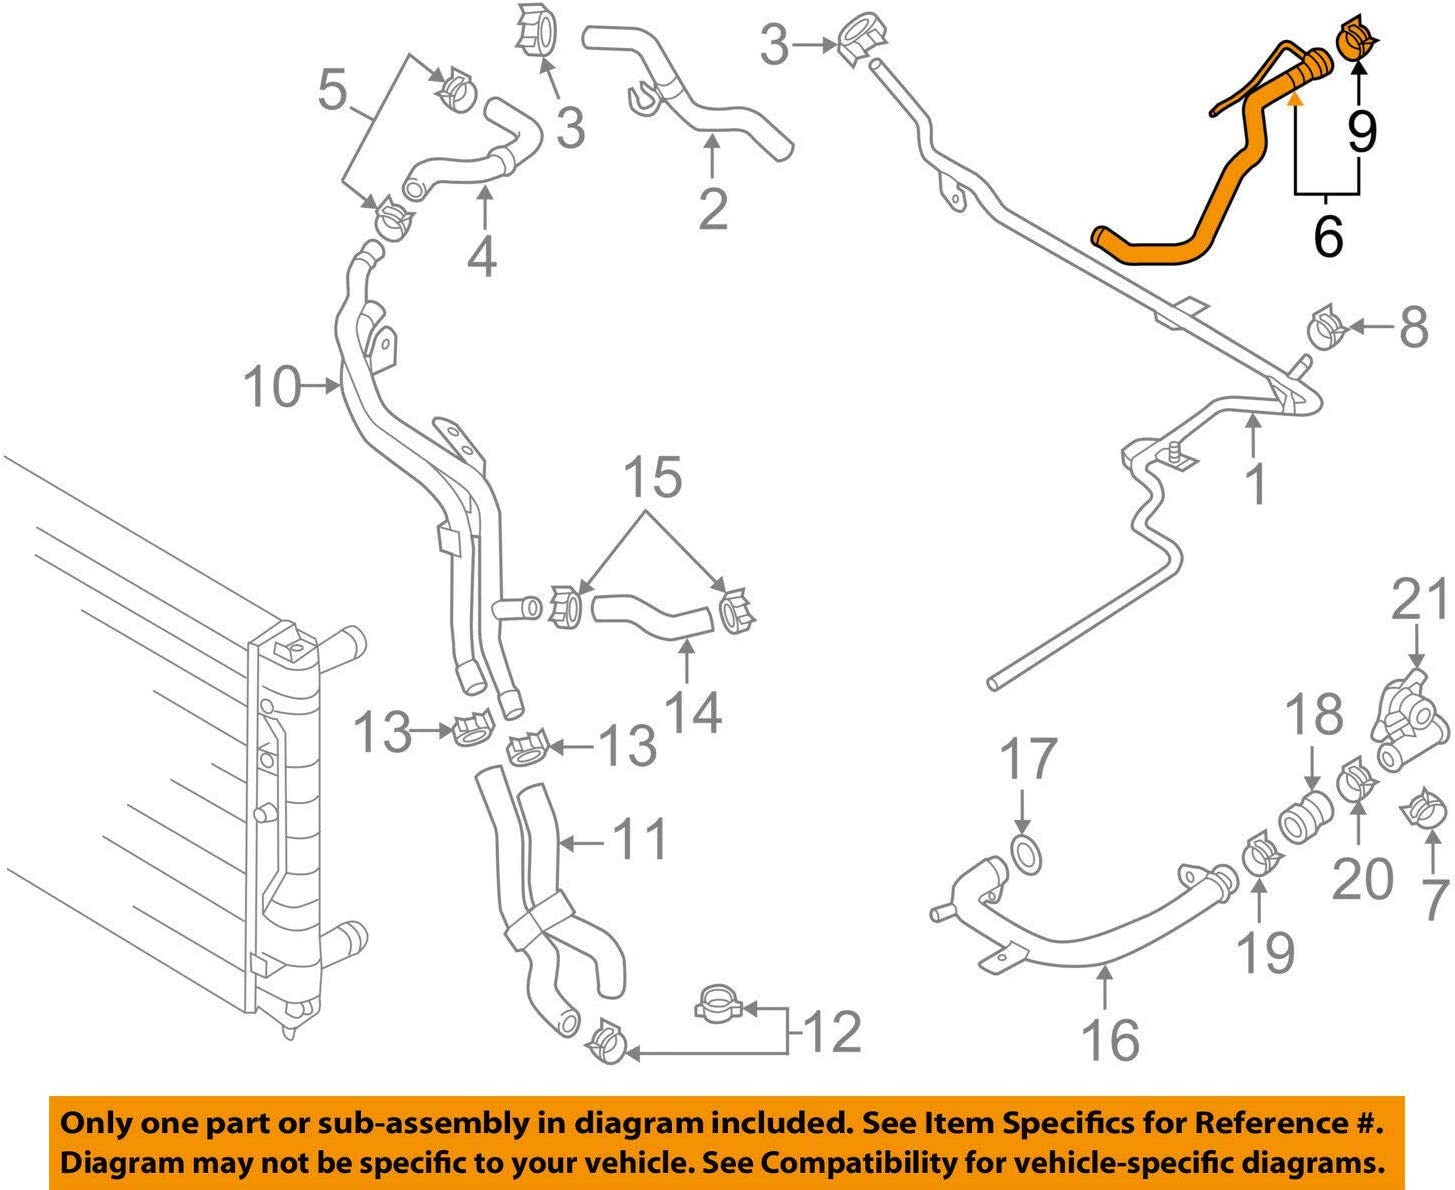 29 2001 Vw Jetta Radiator Hose Diagram